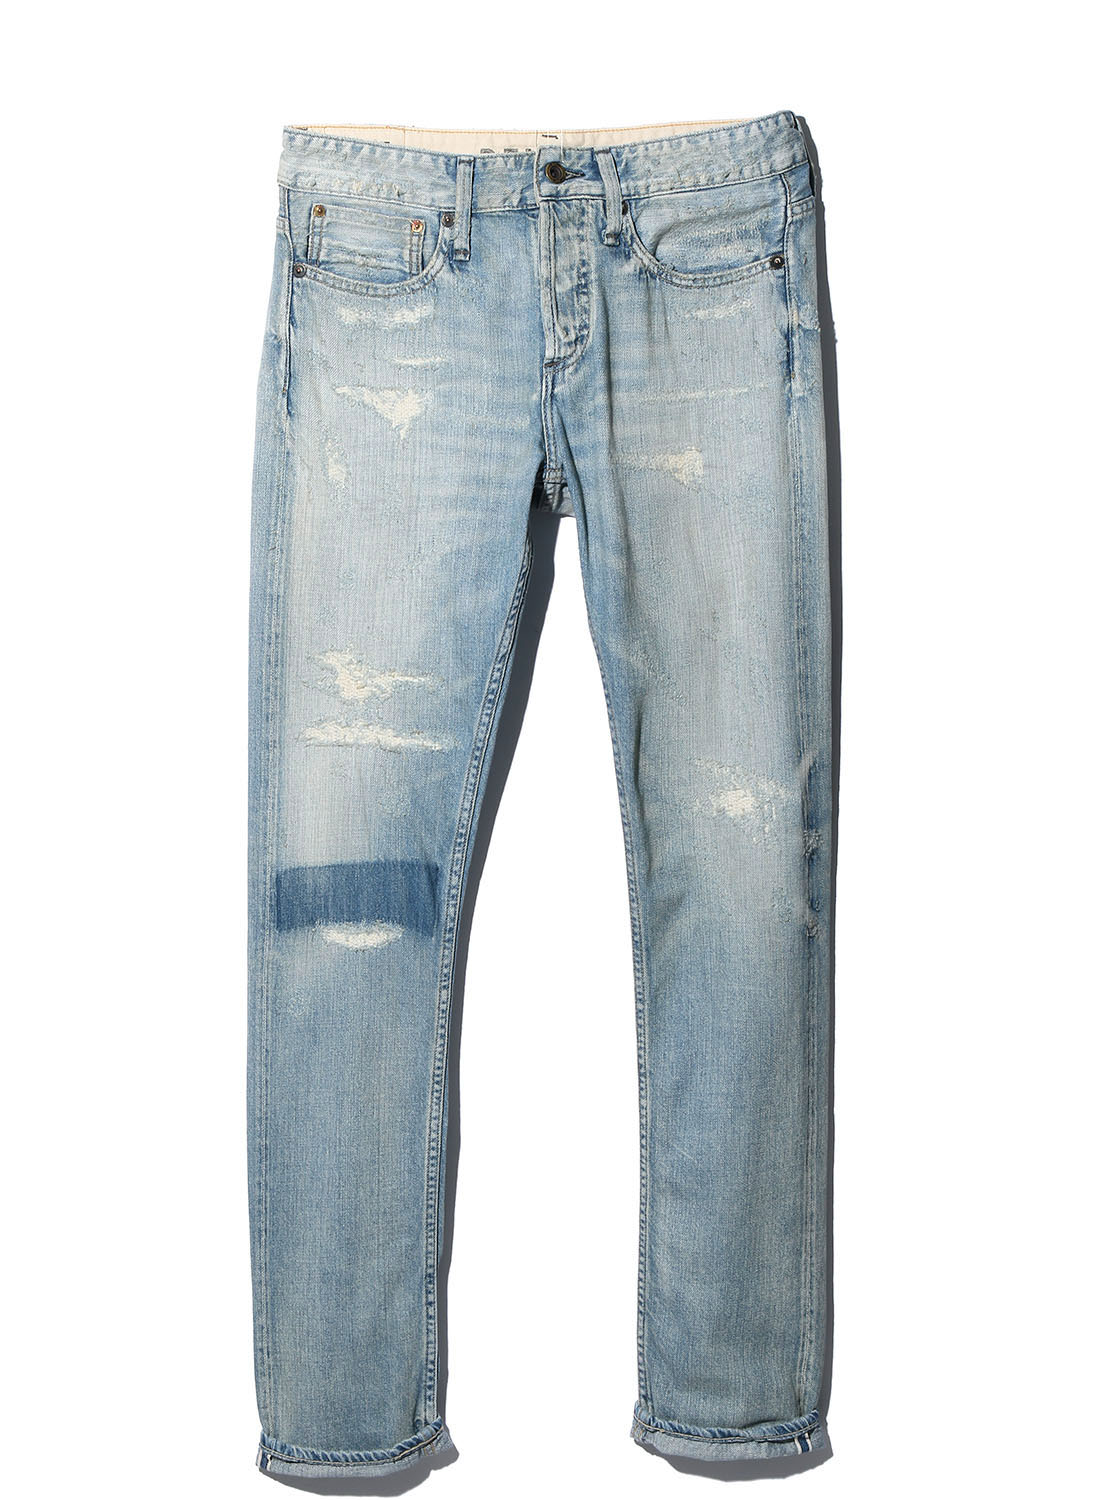 【MADE IN JAPAN DENIM】 RAZOR MIJ2DS